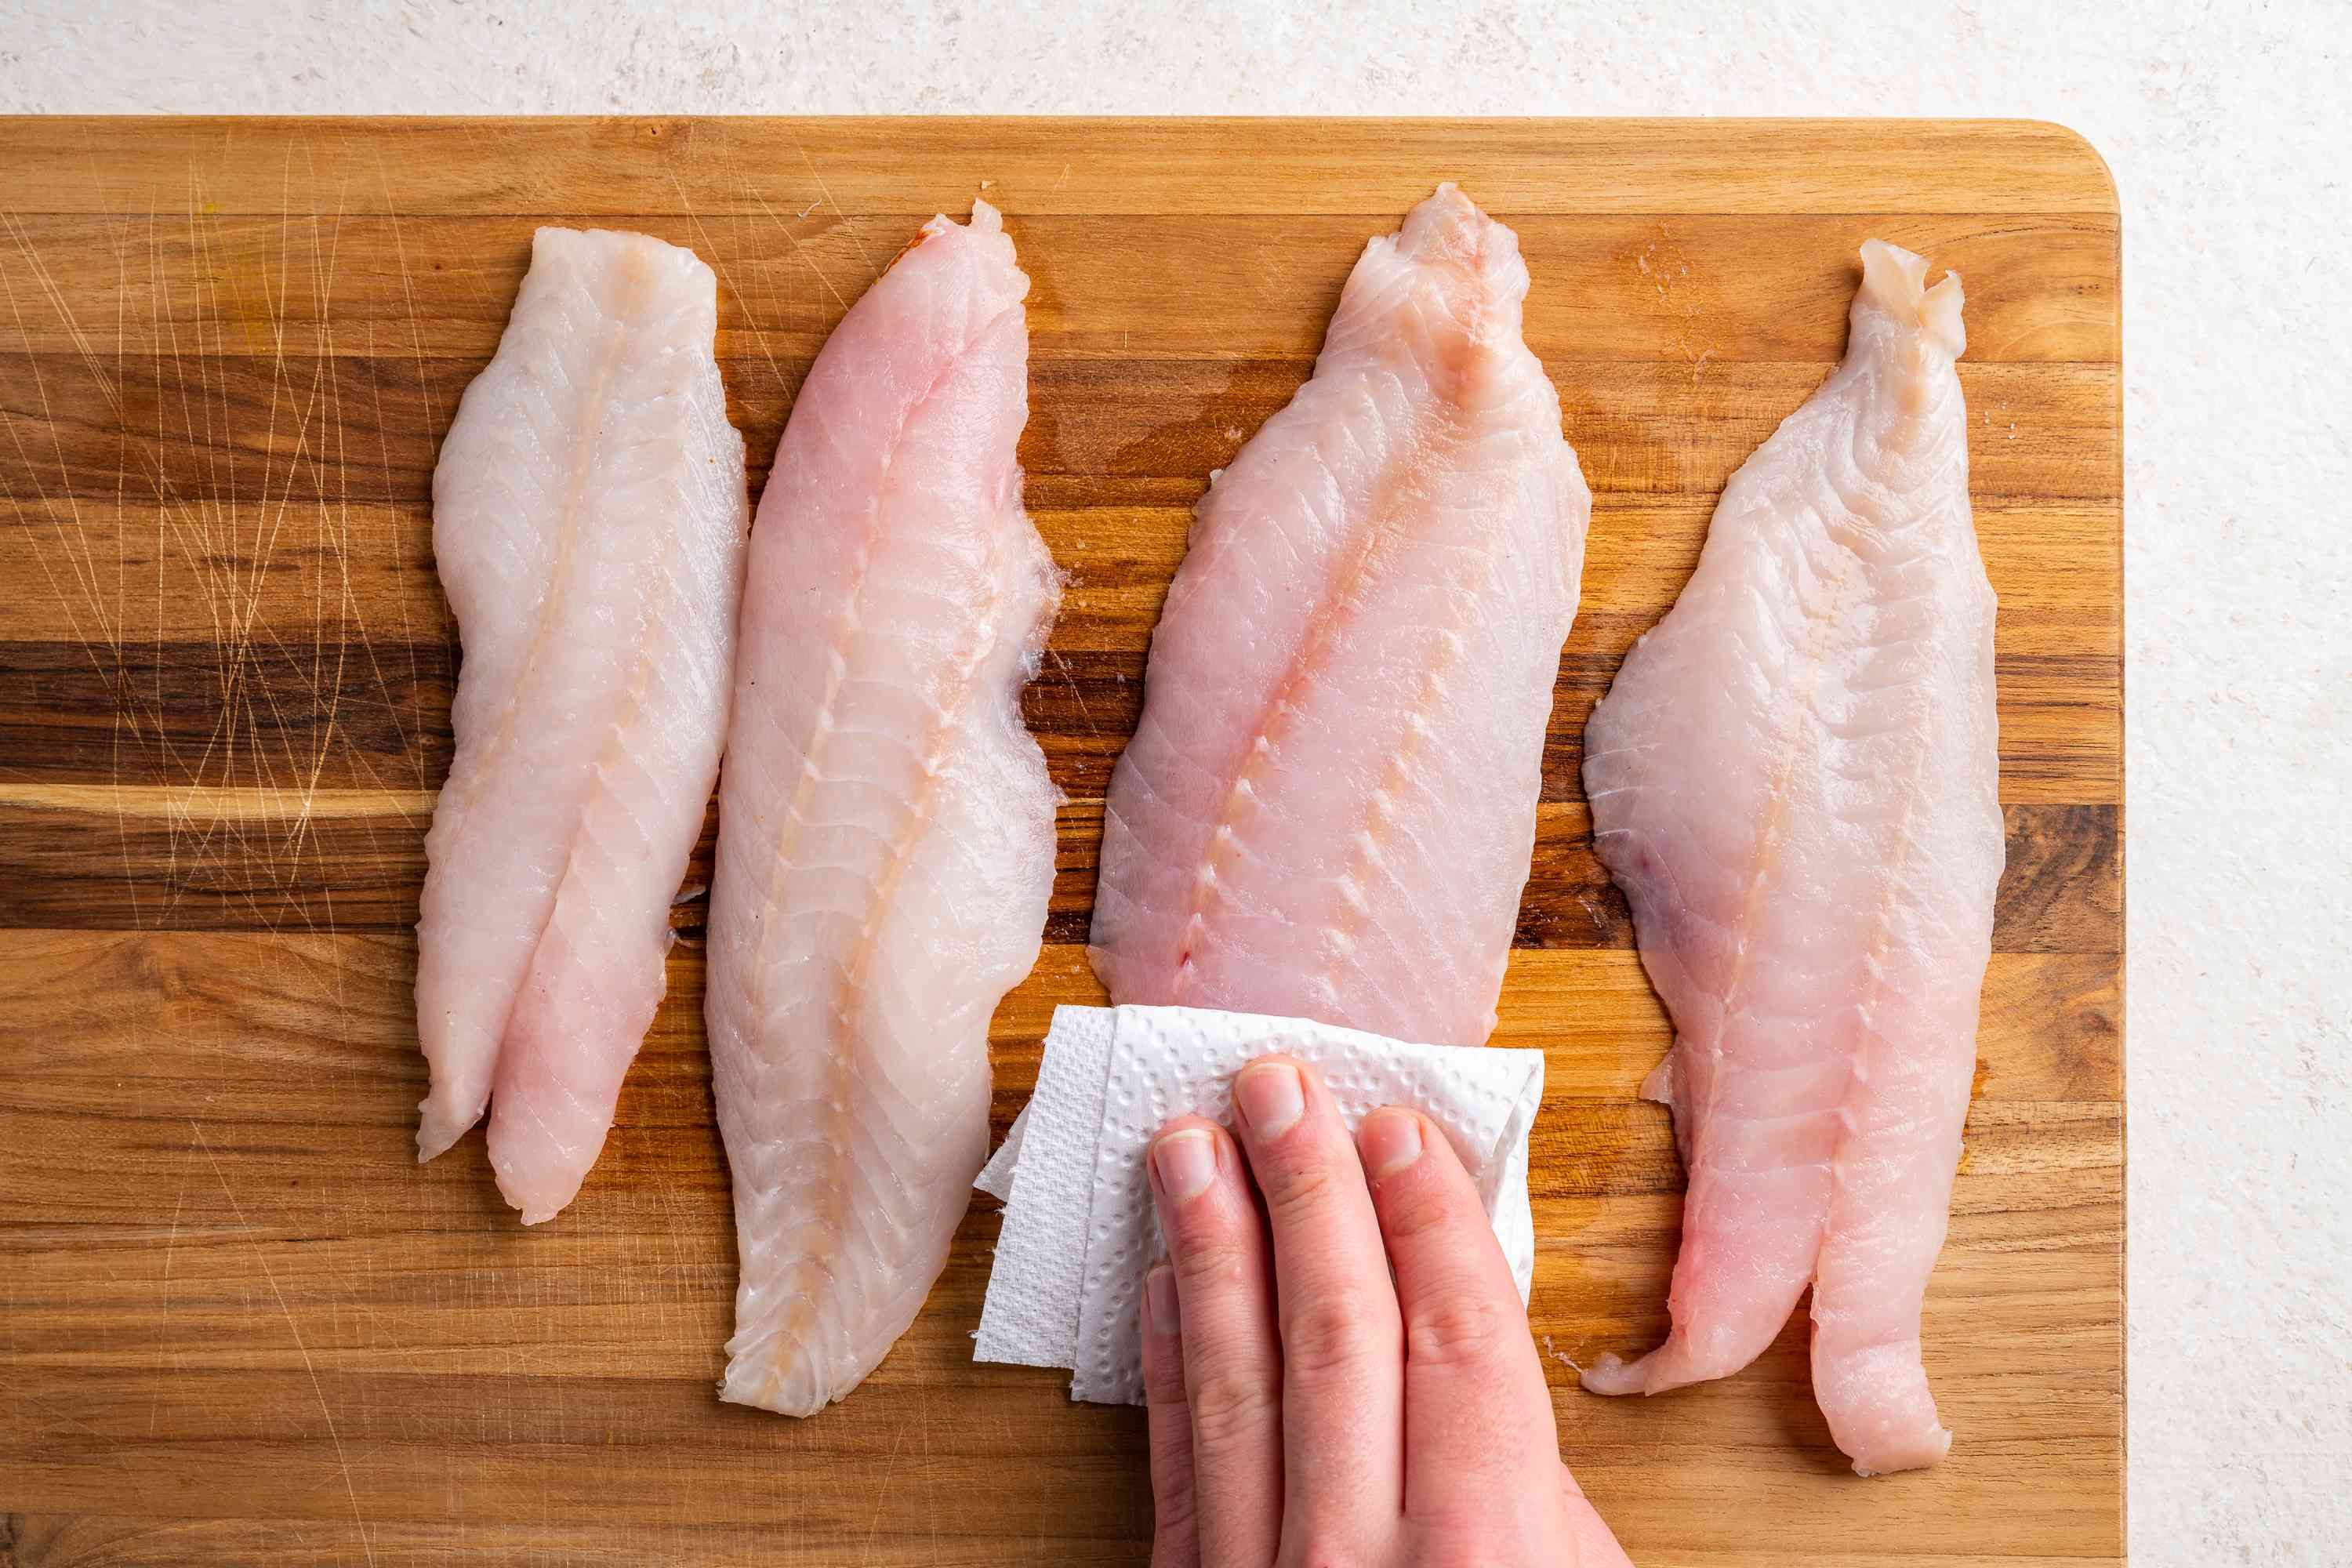 wash and dry the fish with a paper towel